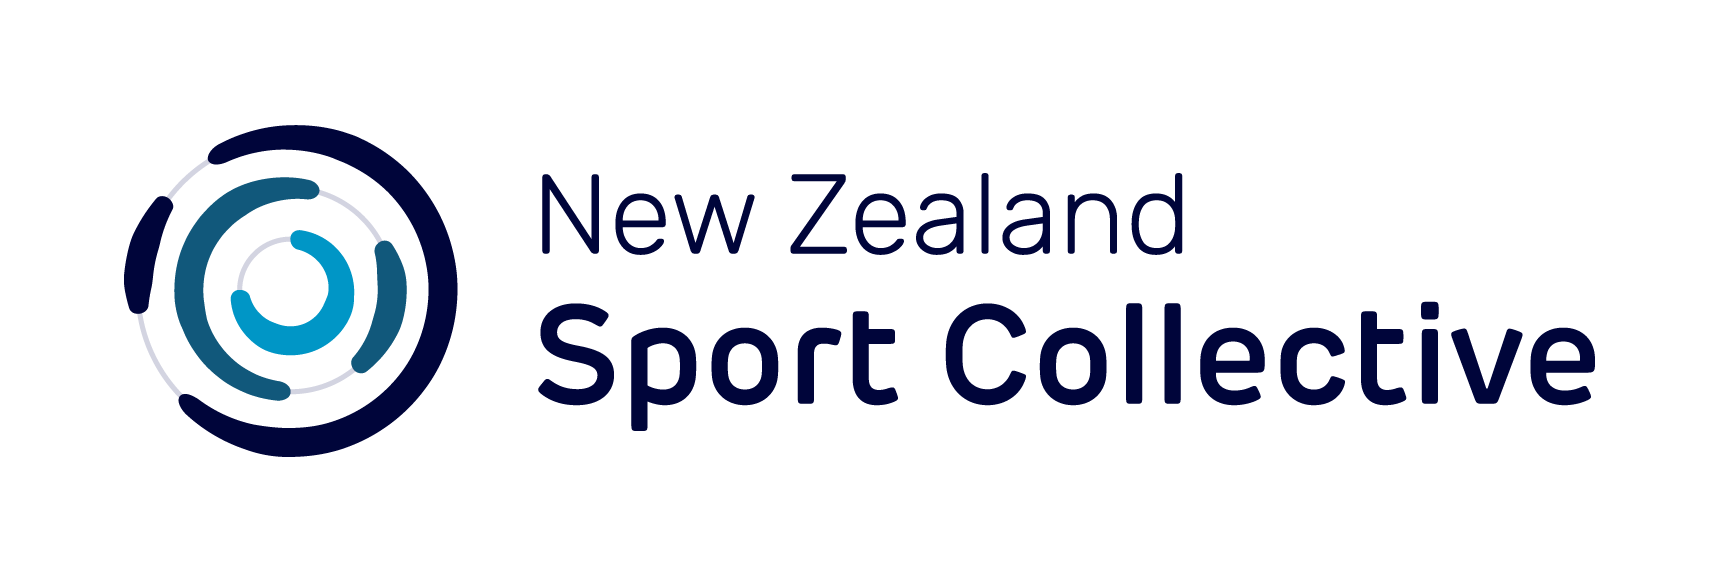 NZ Sport Collective